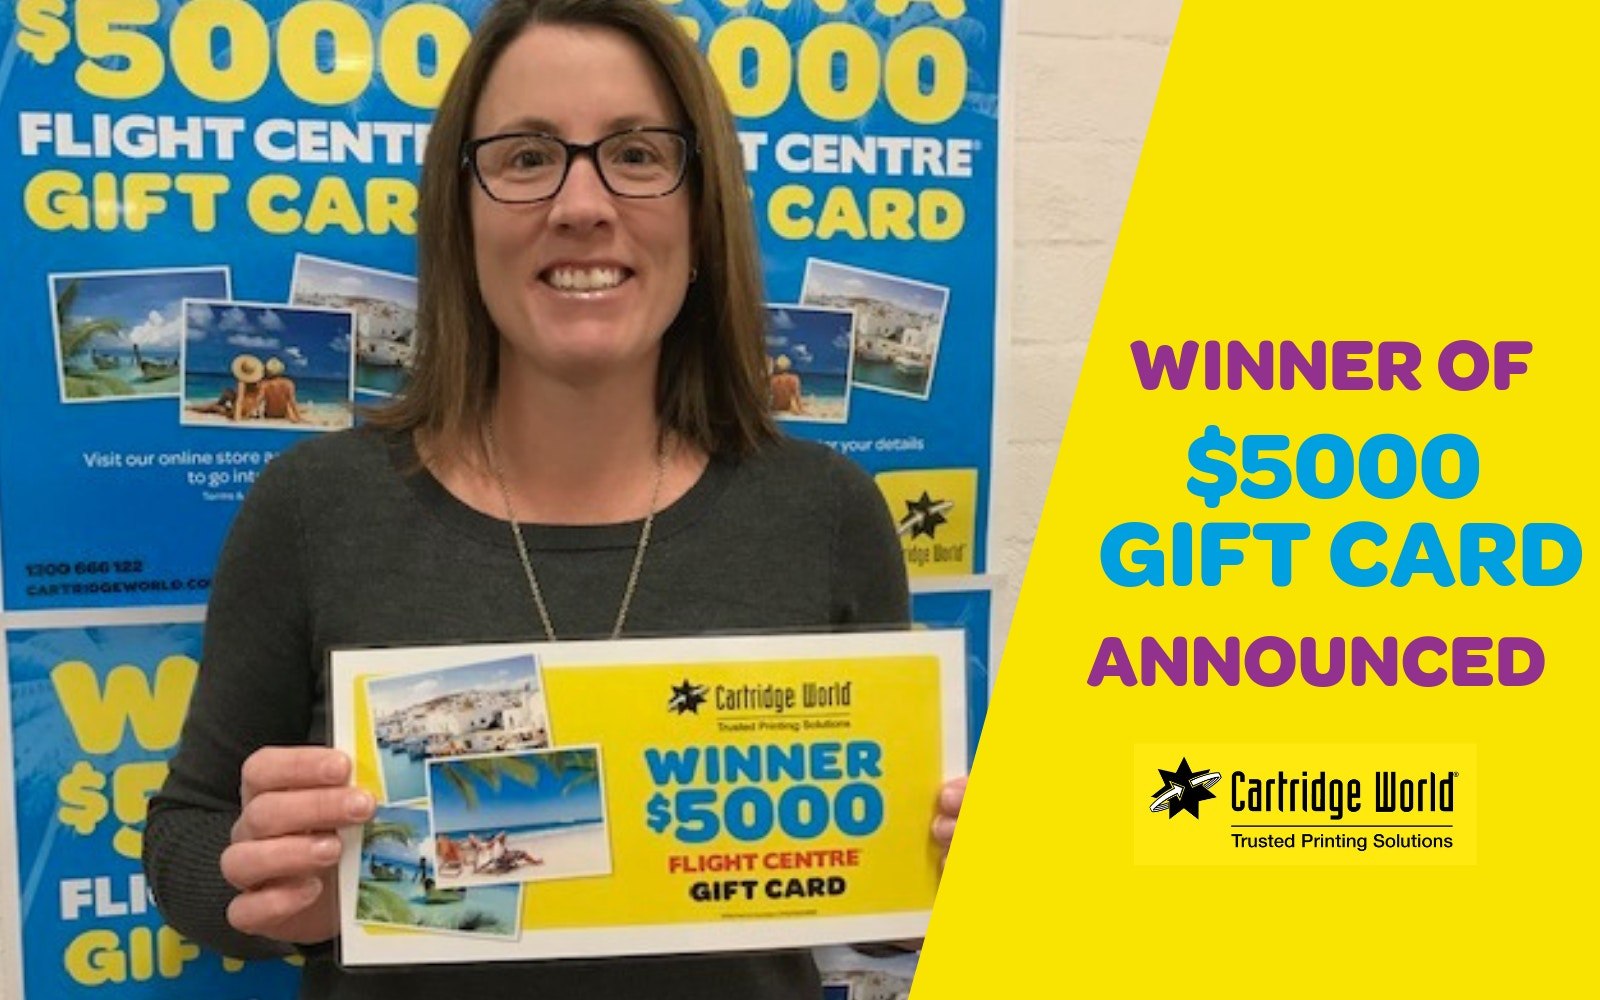 Cartridge World announces winner of $5000 Gift Card